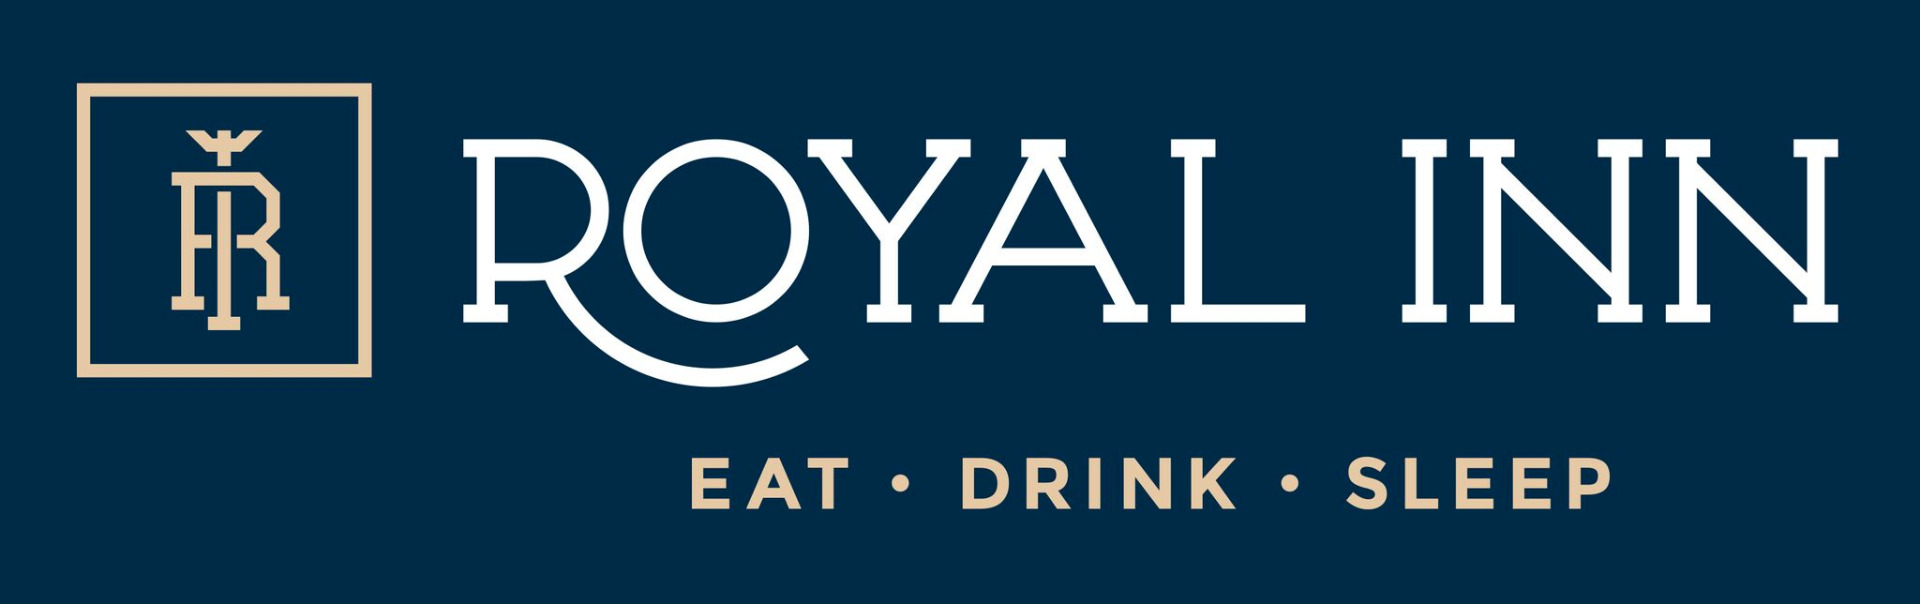 The Royal Inn Meals Pub Holidays Par Cornwall